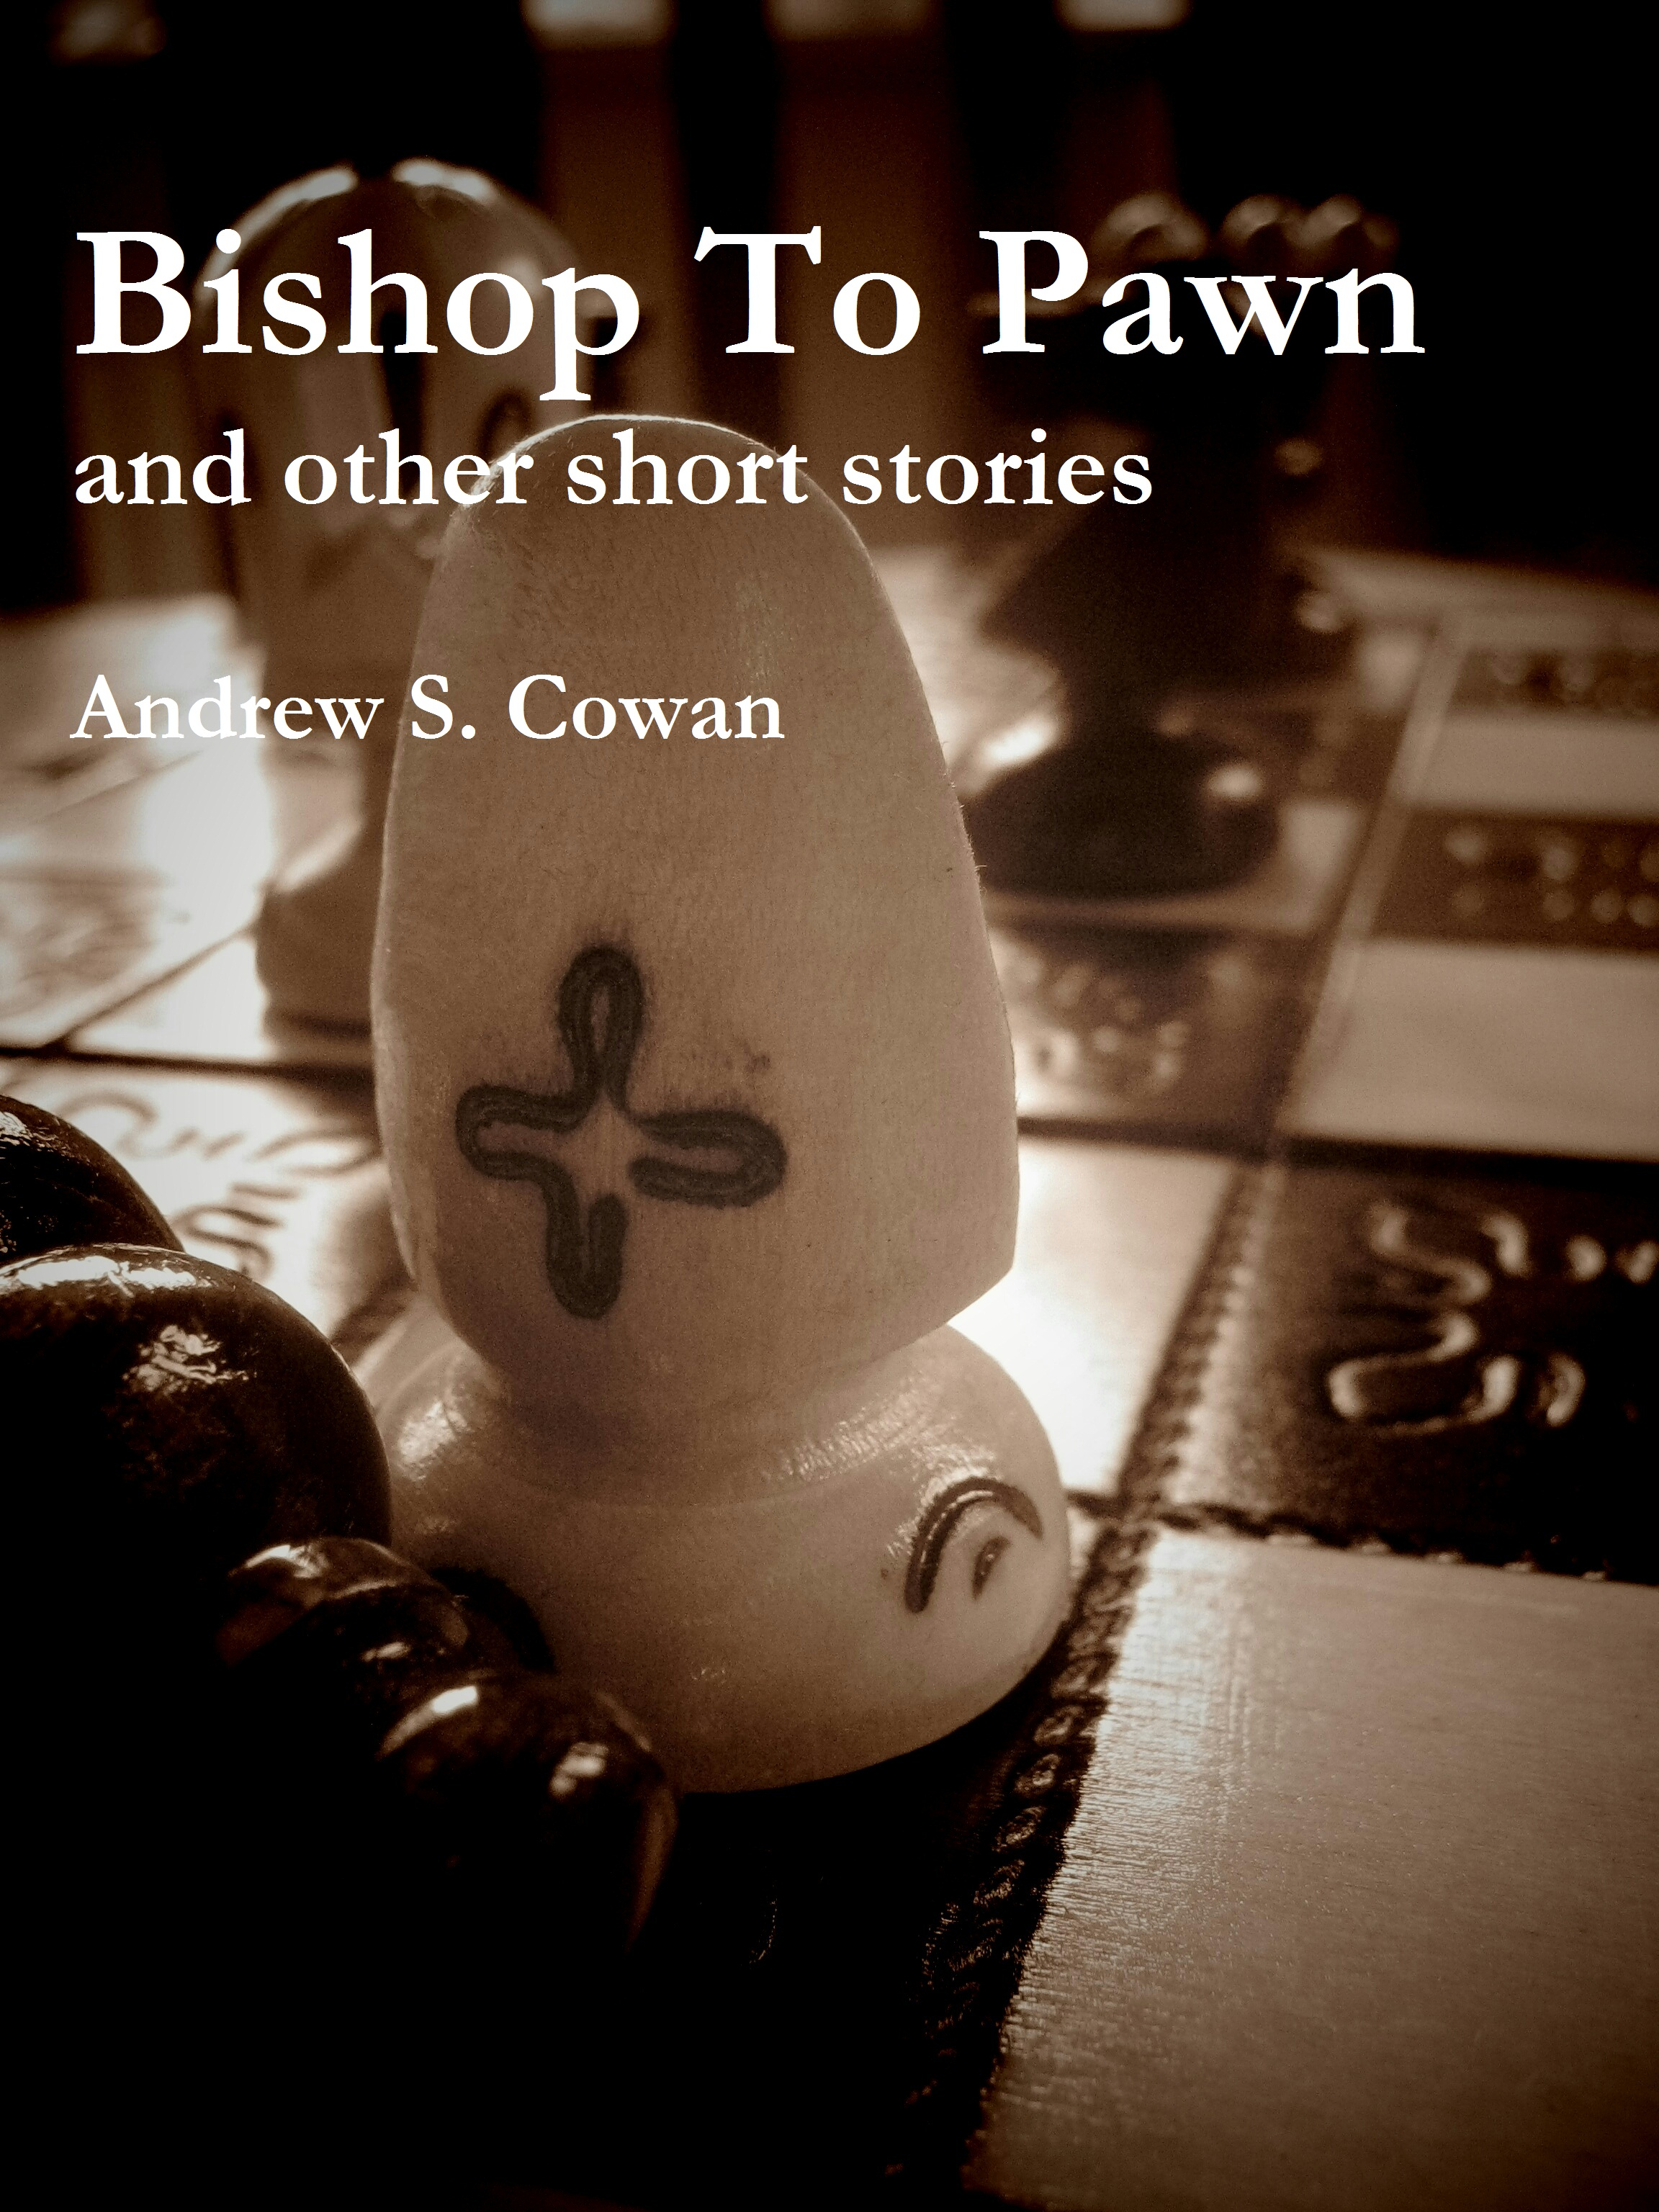 Bishop To Pawn